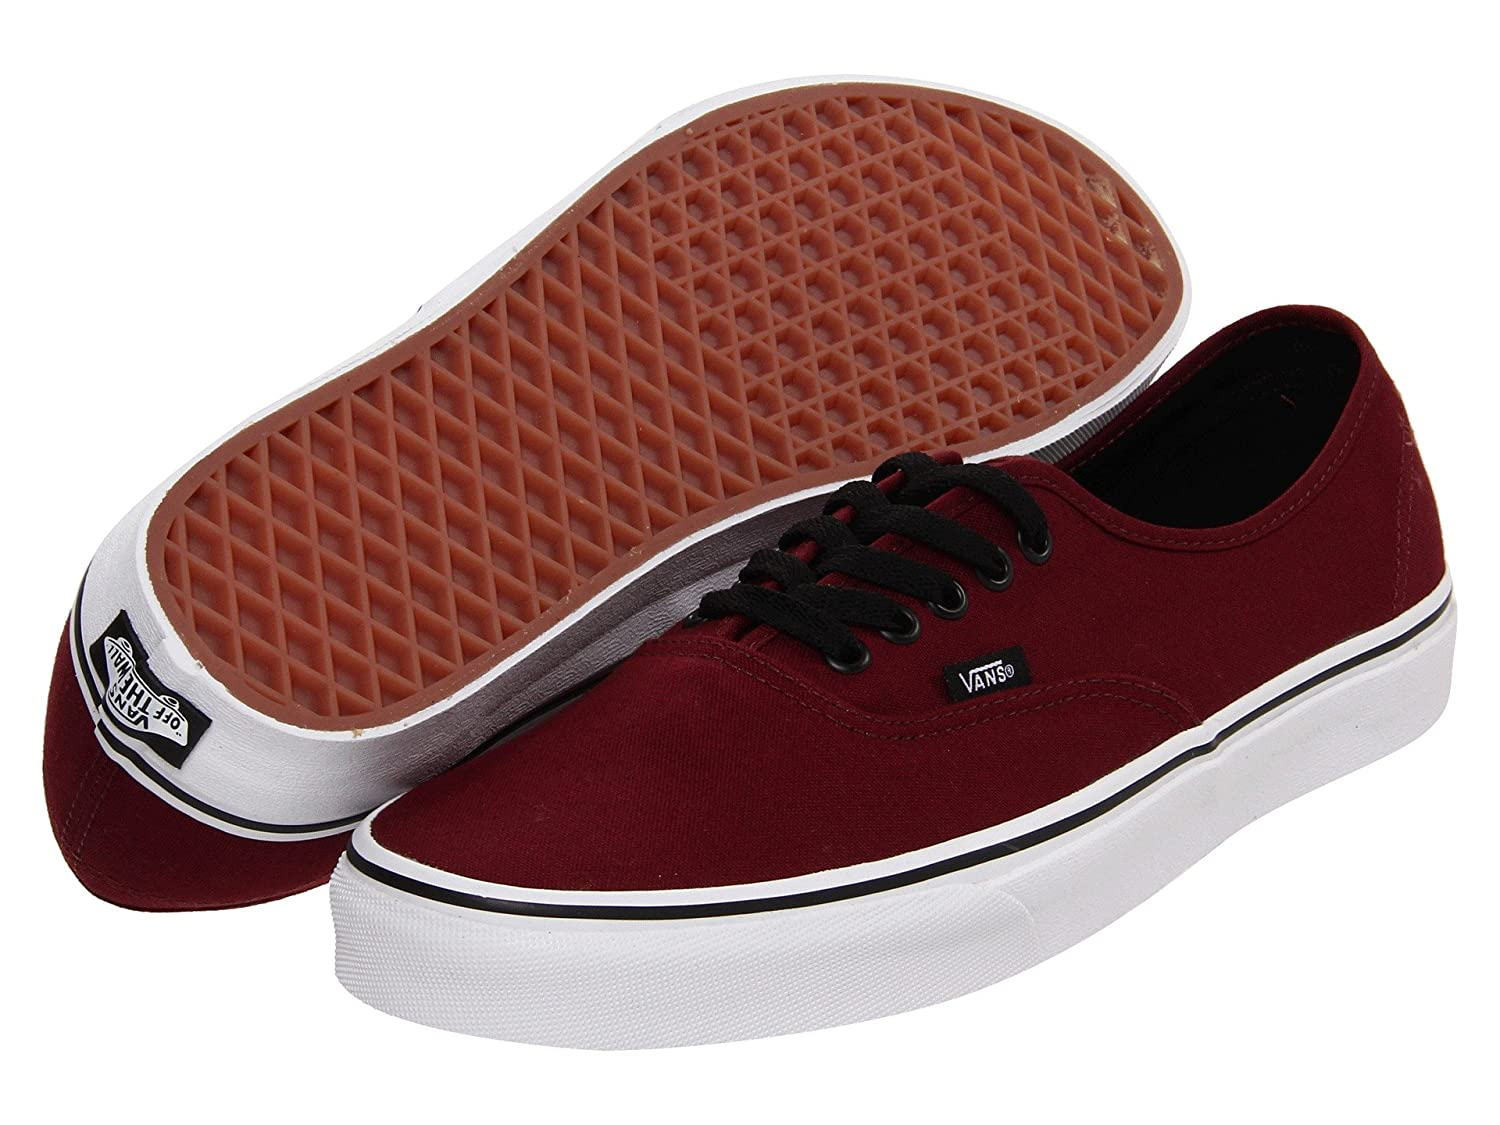 Vans Unisex Authentic Canvas Shoes 9 D(M) US|Port Royale/Black